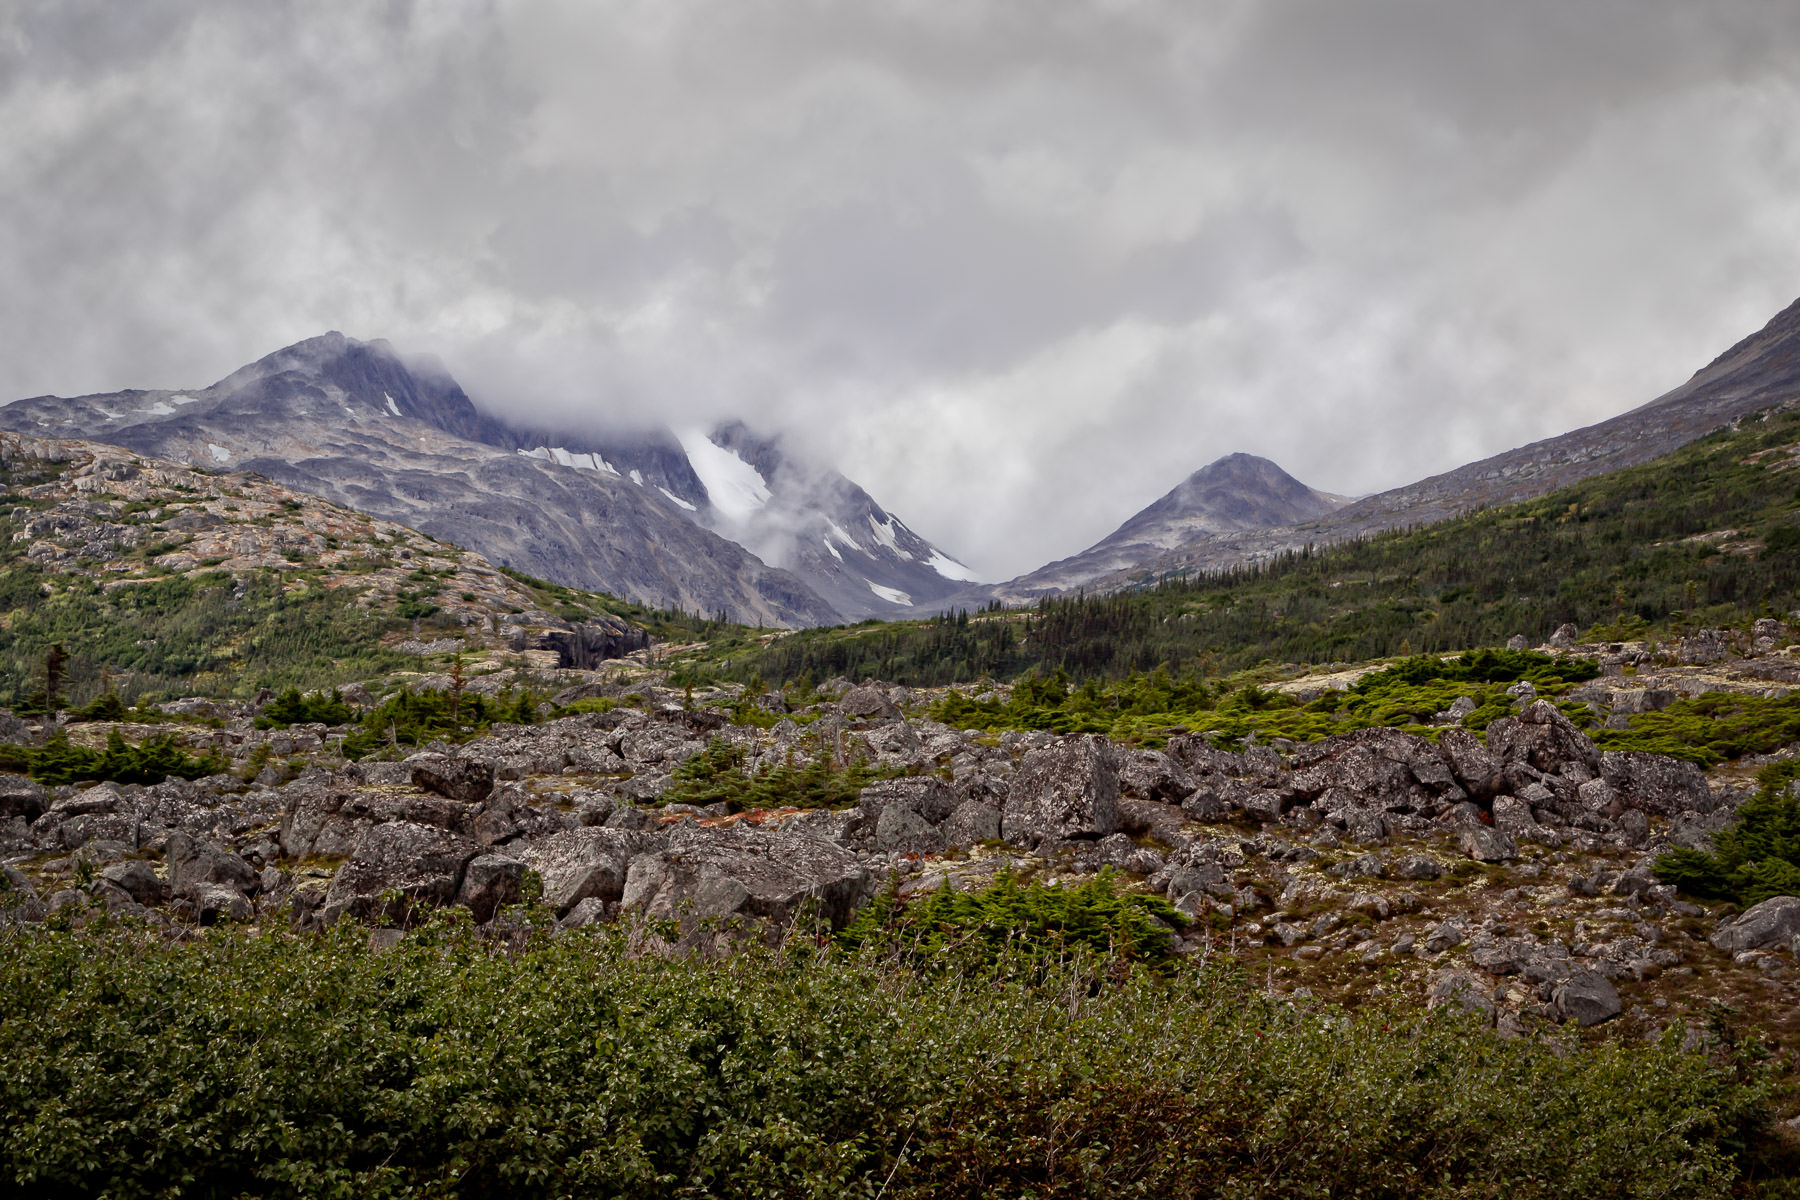 Mountains rise into cold, grey clouds in British Columbia's Stikine Region.